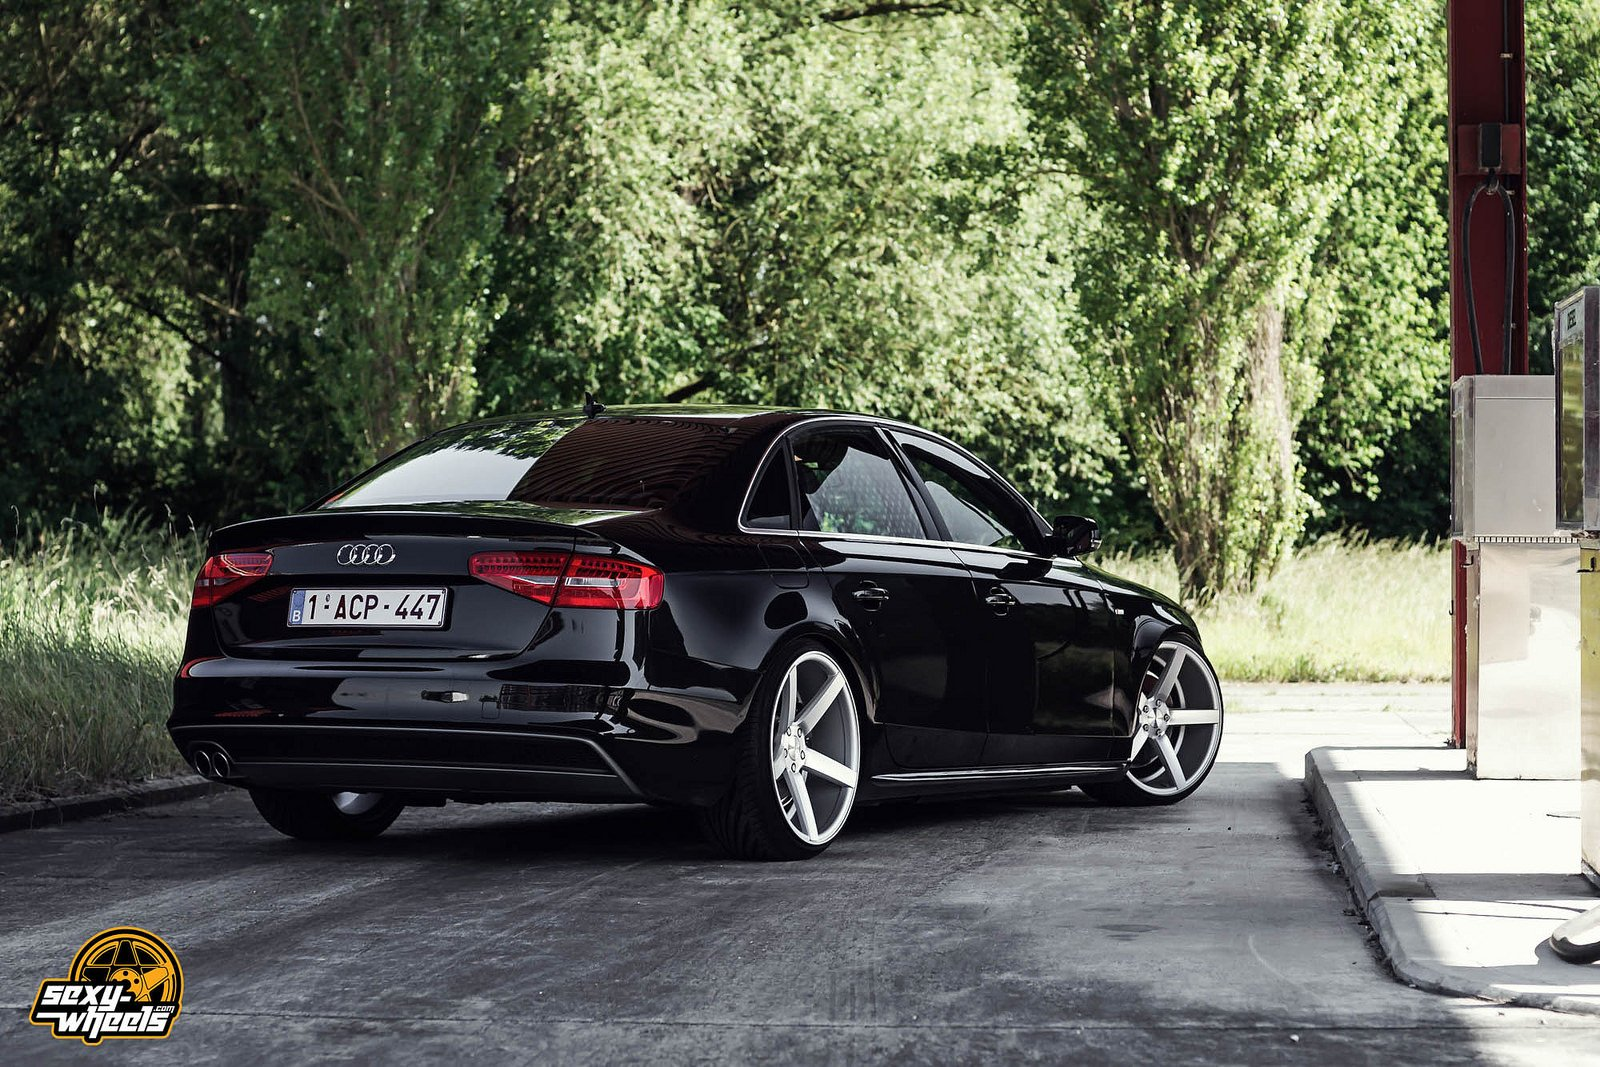 cars vossen tuning wheels audi a4 sedan black wallpaper 1600x1067 679146 wallpaperup. Black Bedroom Furniture Sets. Home Design Ideas